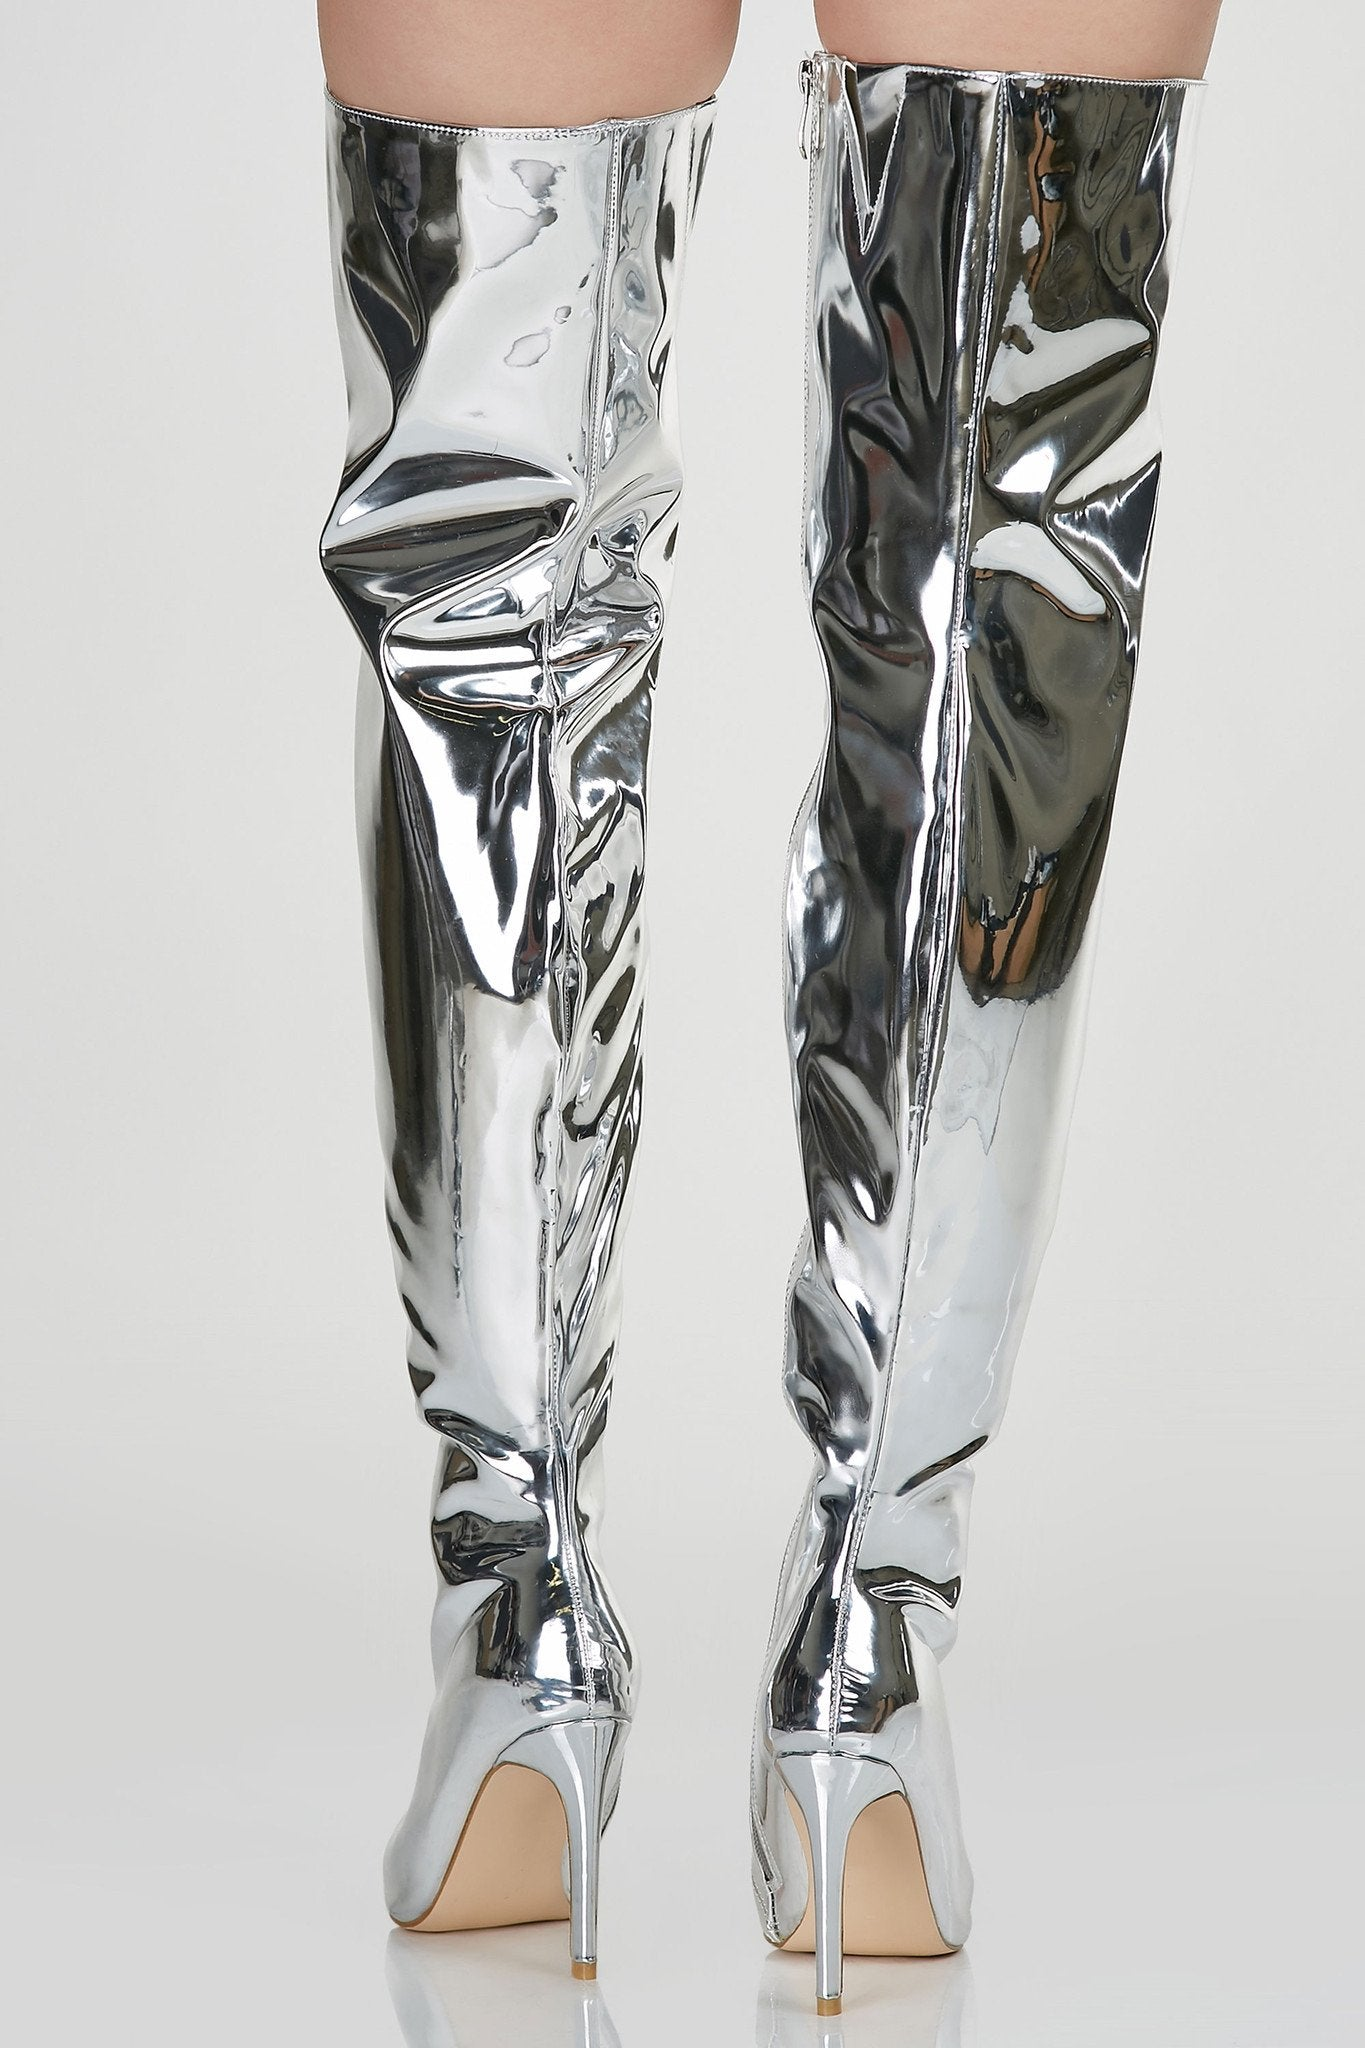 Sexy thigh high stilettos with shiny metallic finish. Side zip closure with pointed toe finish.